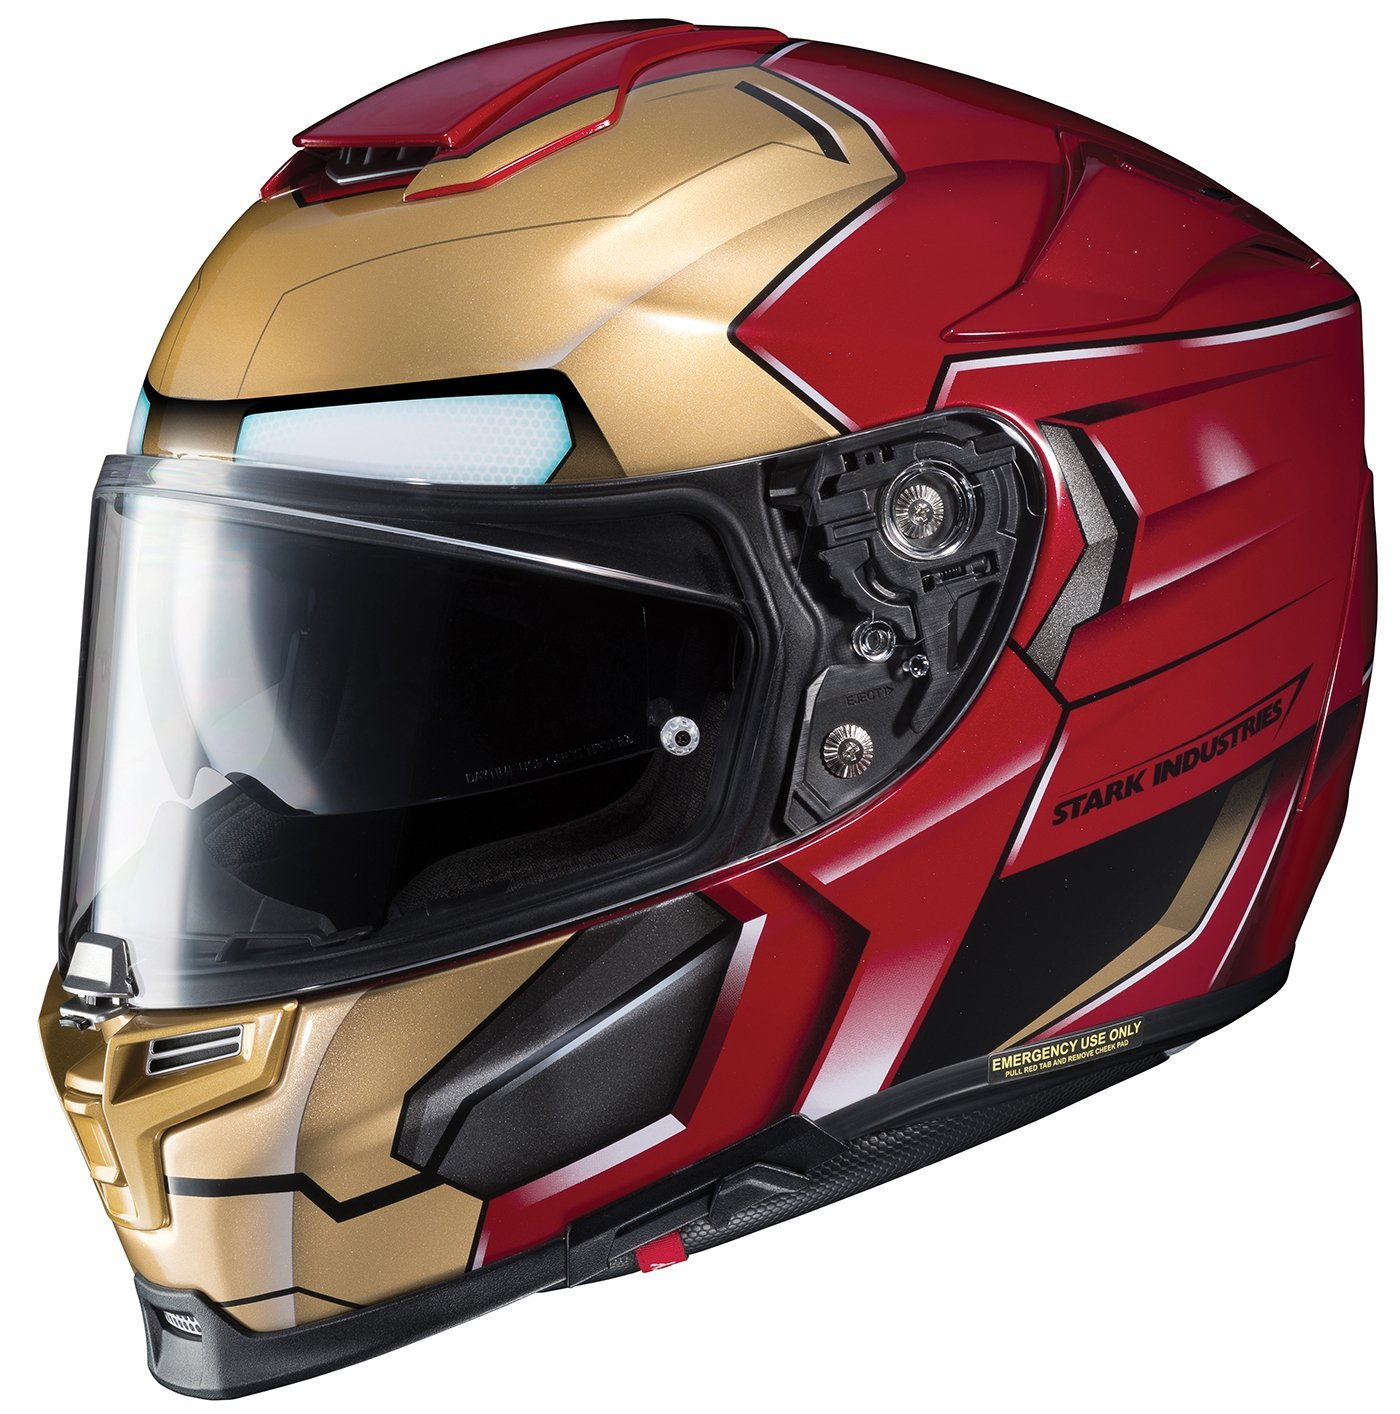 HJC RPHA 70 ST Iron Man Motorcycle Helmet Review